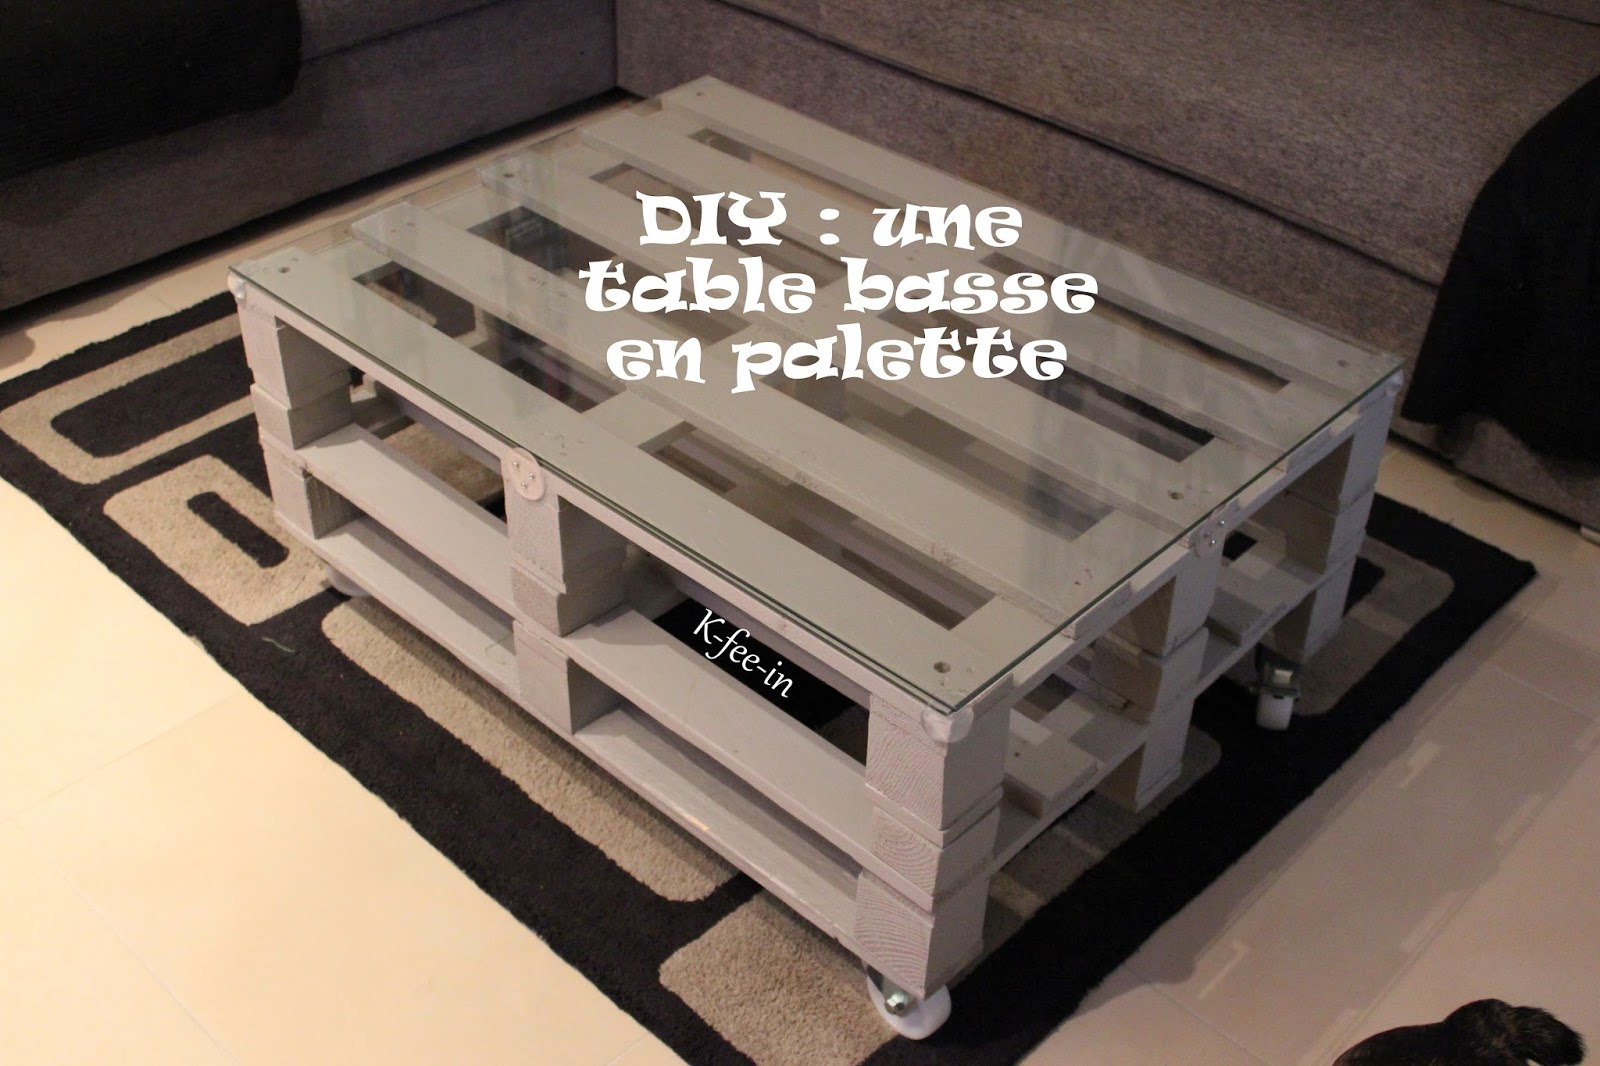 diy une table basse en palette mini bonheur. Black Bedroom Furniture Sets. Home Design Ideas